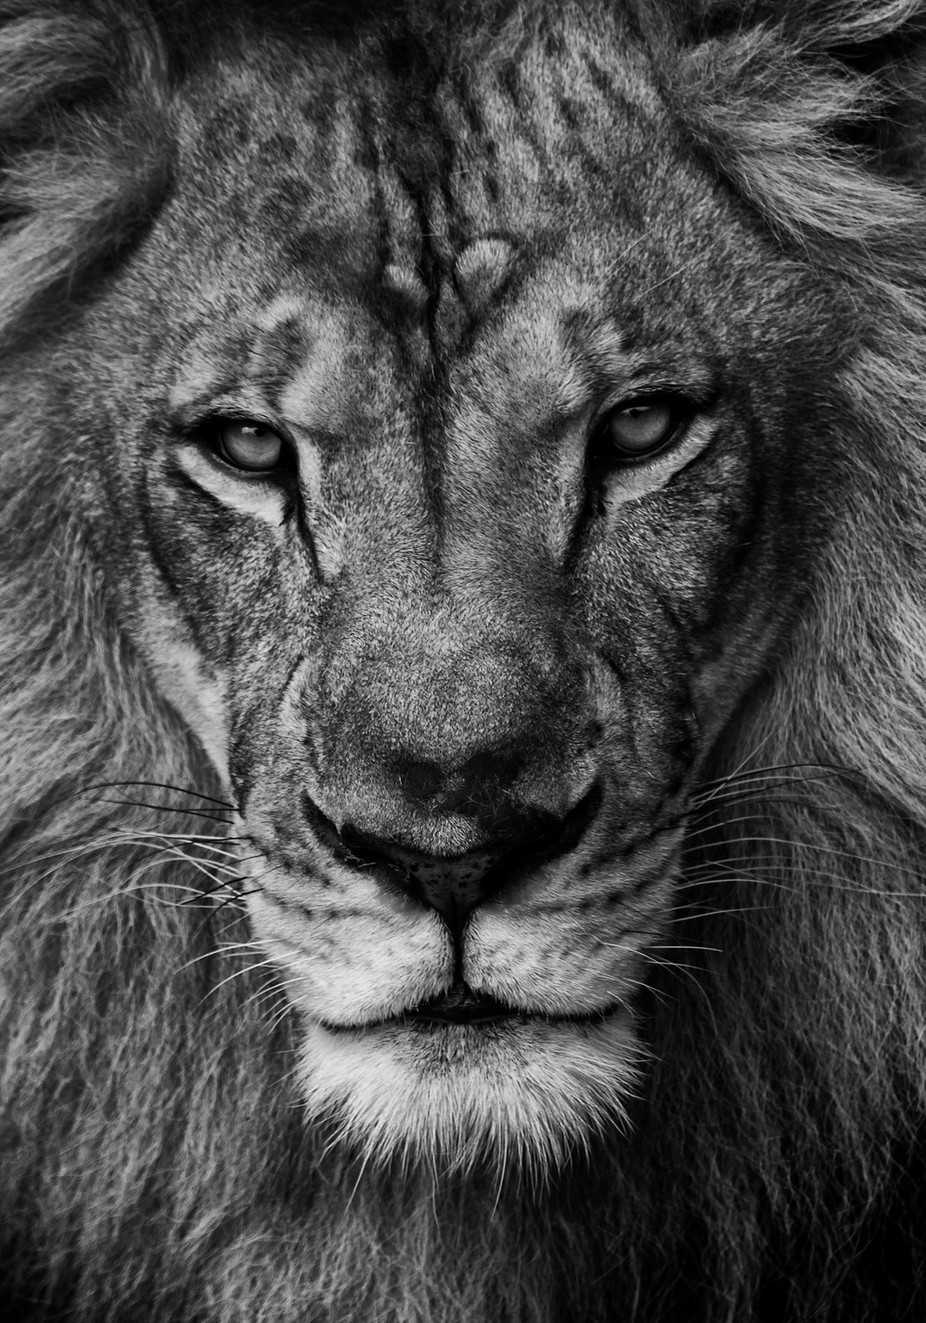 The  Stare Down by sabatesphoto - Animals In Black And White Photo Contest